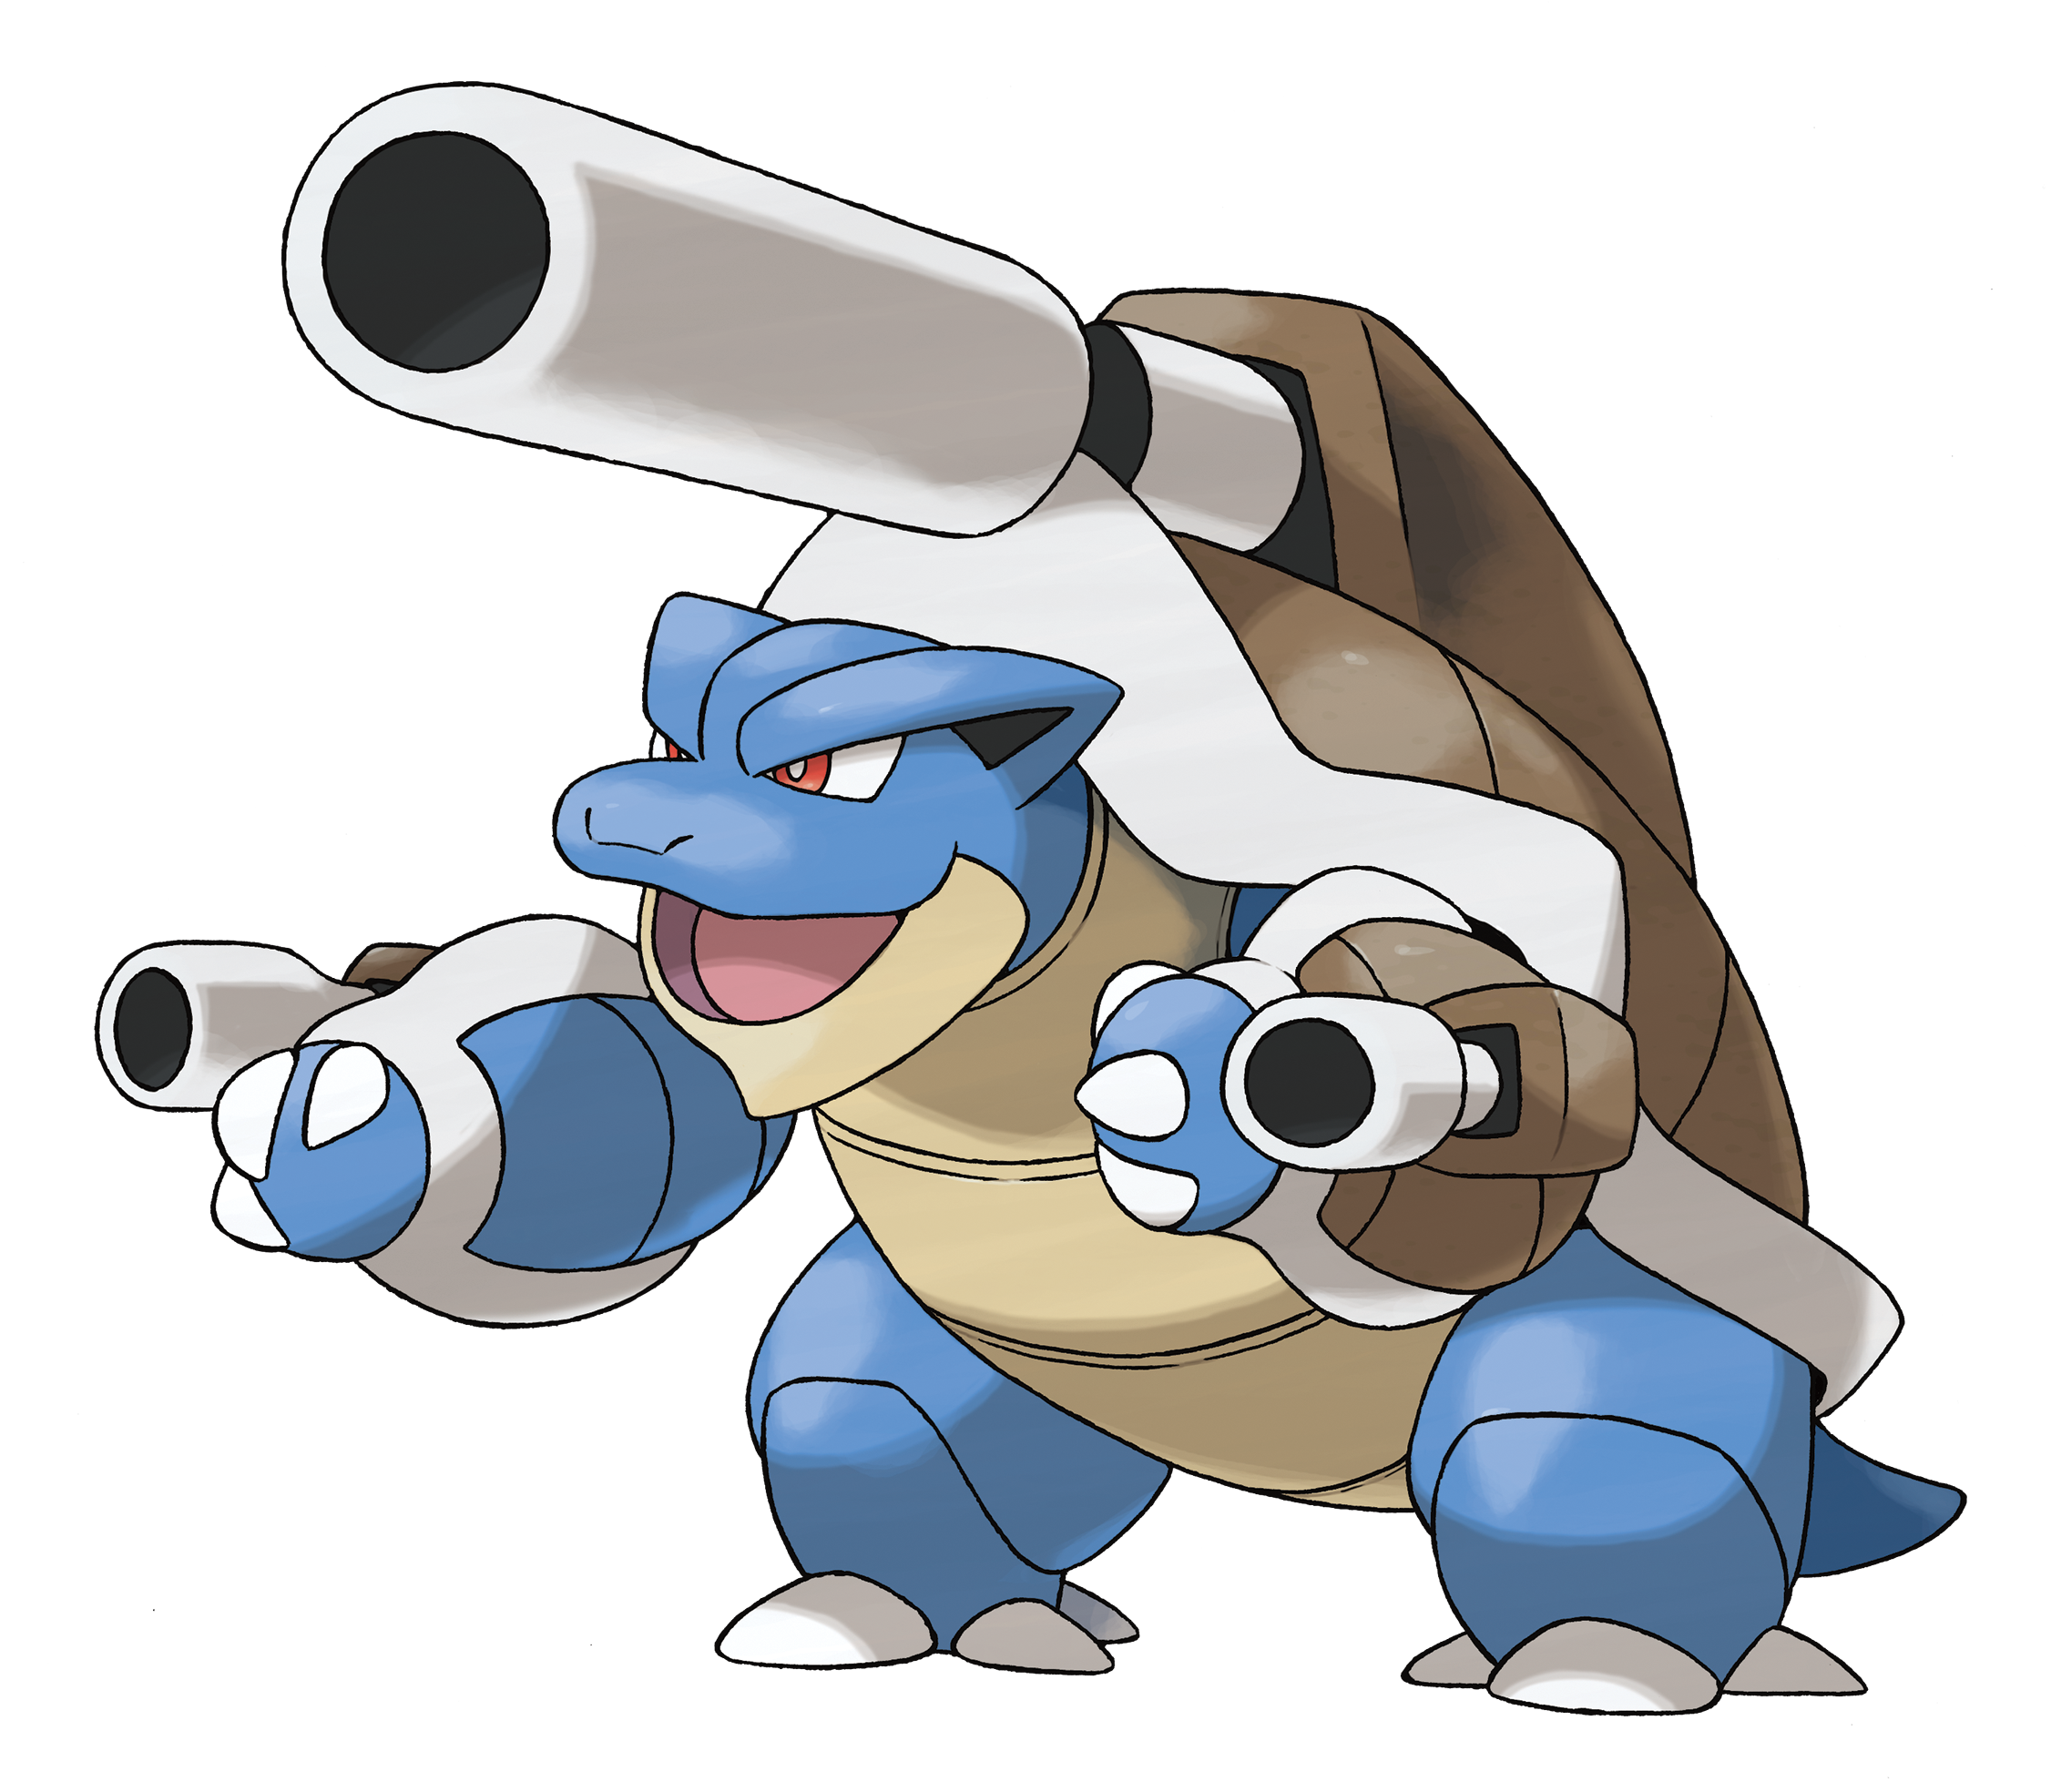 Pok mon x y mega evolution azurilland - Pokemon mega evolution y ...